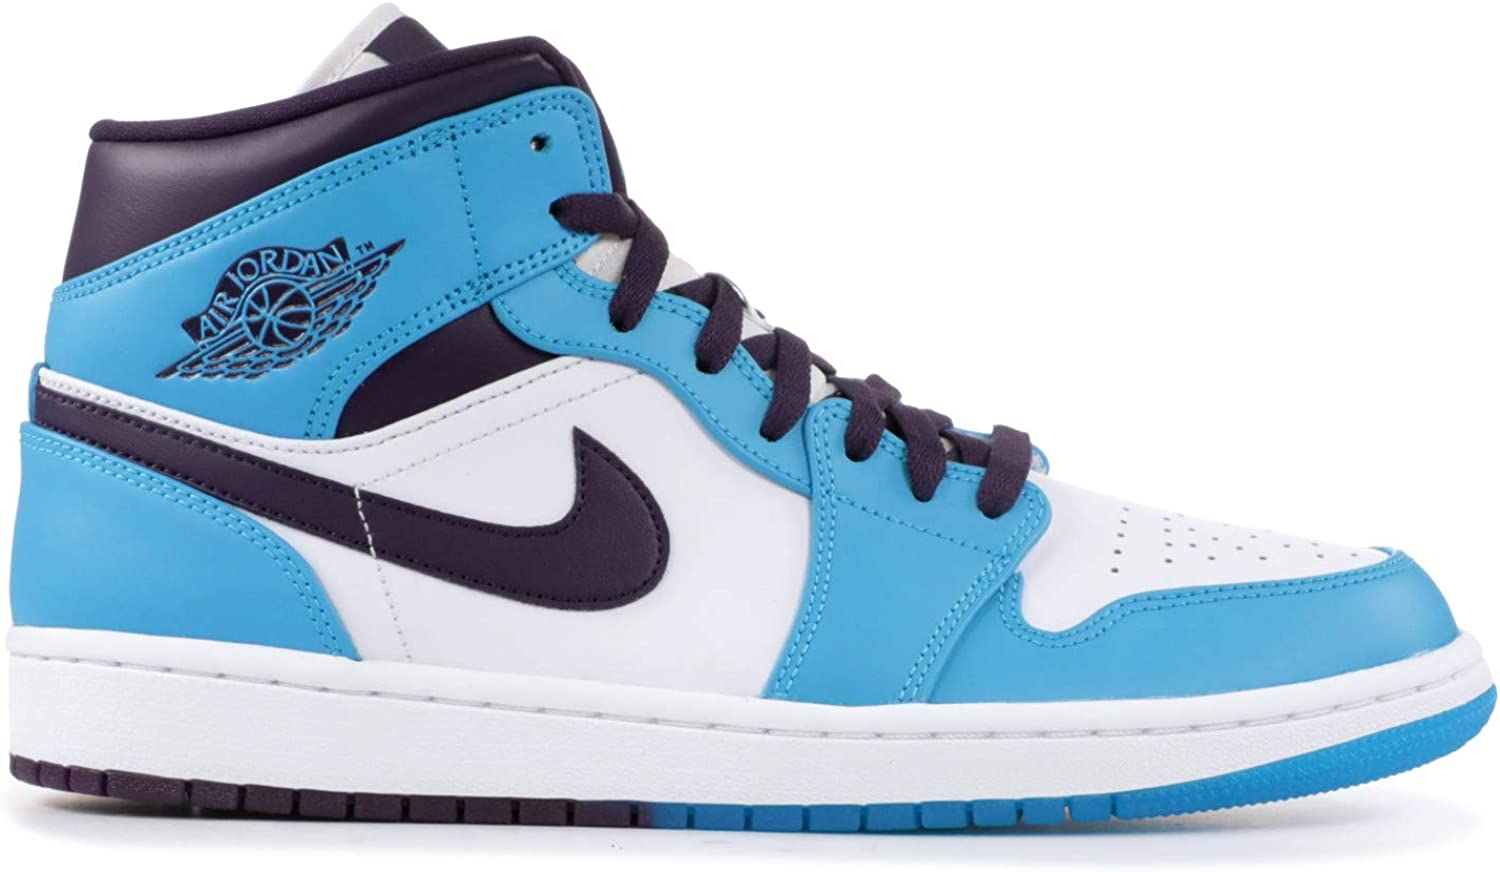 offer discounts top quality amazing selection Nike Air Jordan 1 Mid Chaussure Homme Bleu Lagon/Grand Violet ...